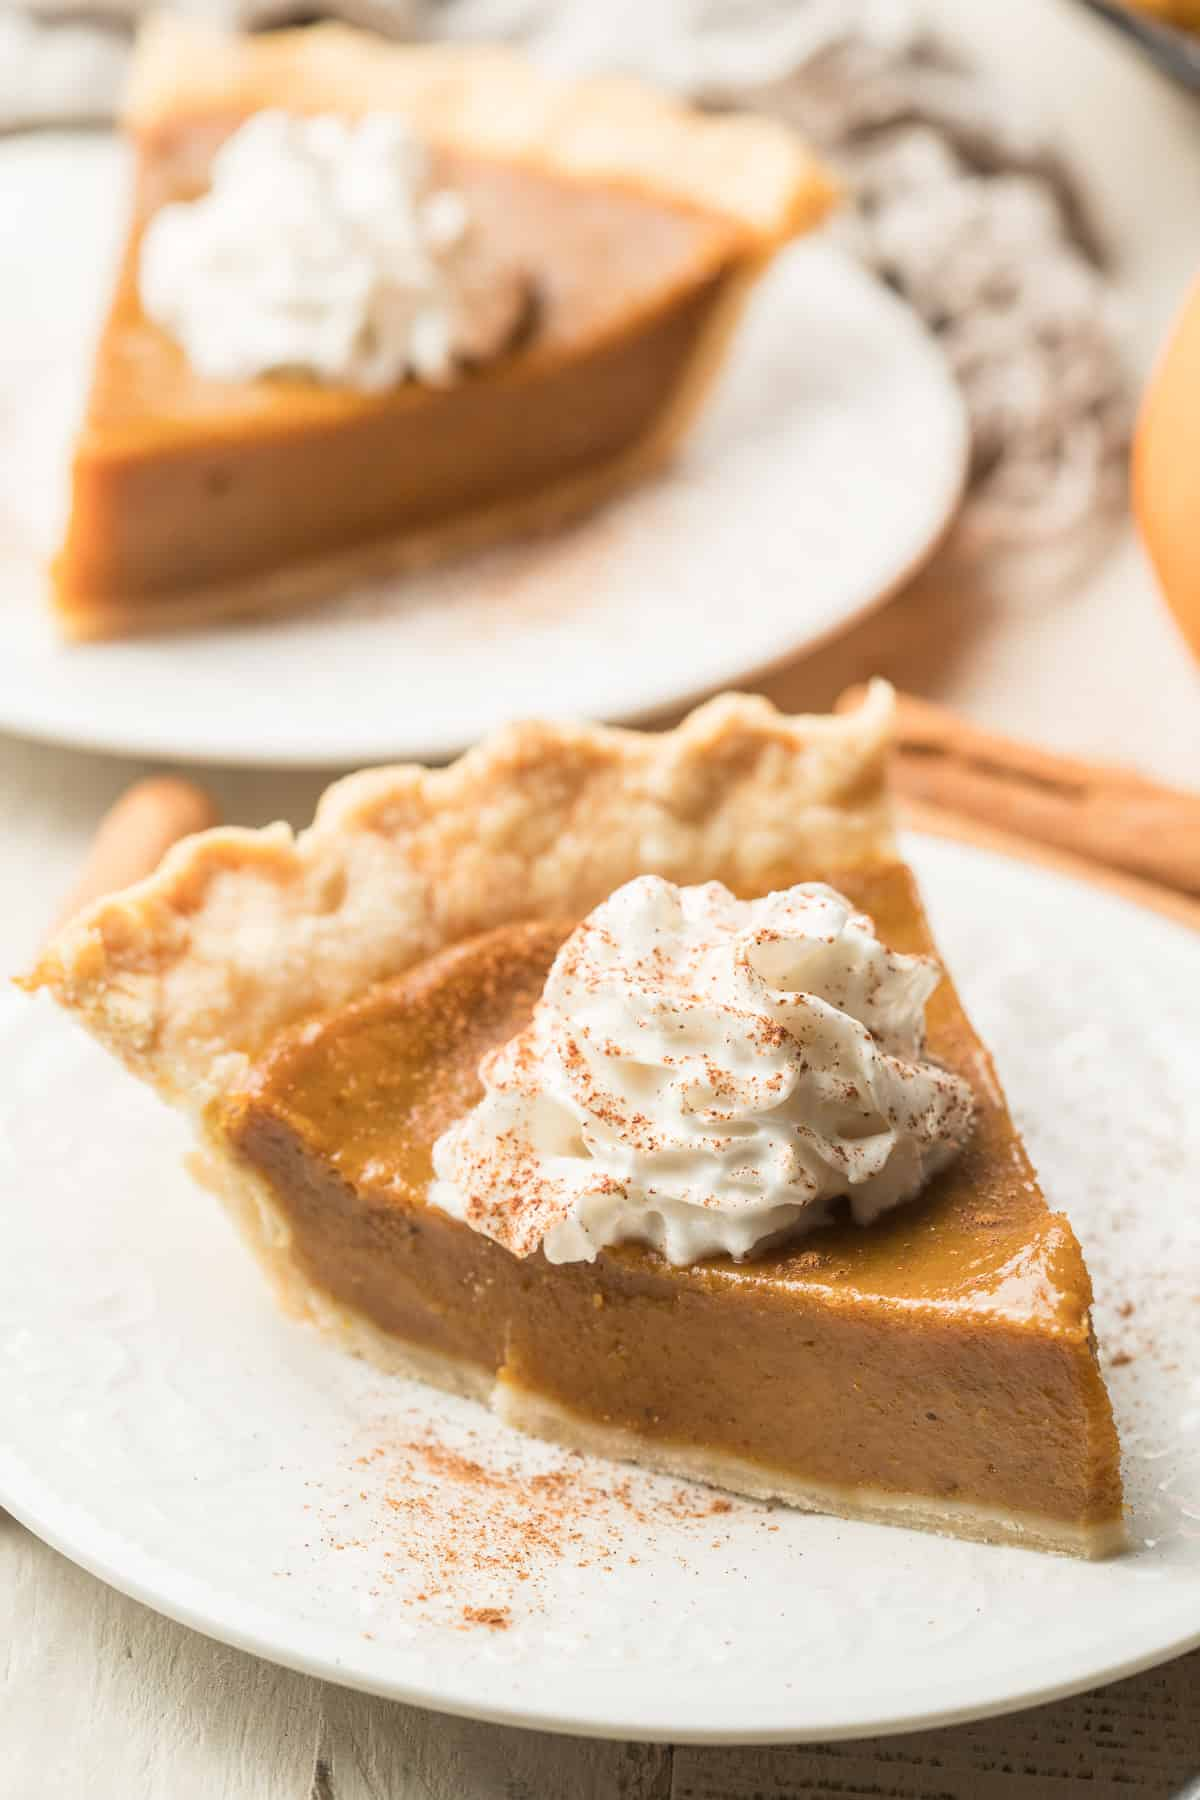 Two plates with slices of Vegan Pumpkin Pie and whipped topping.